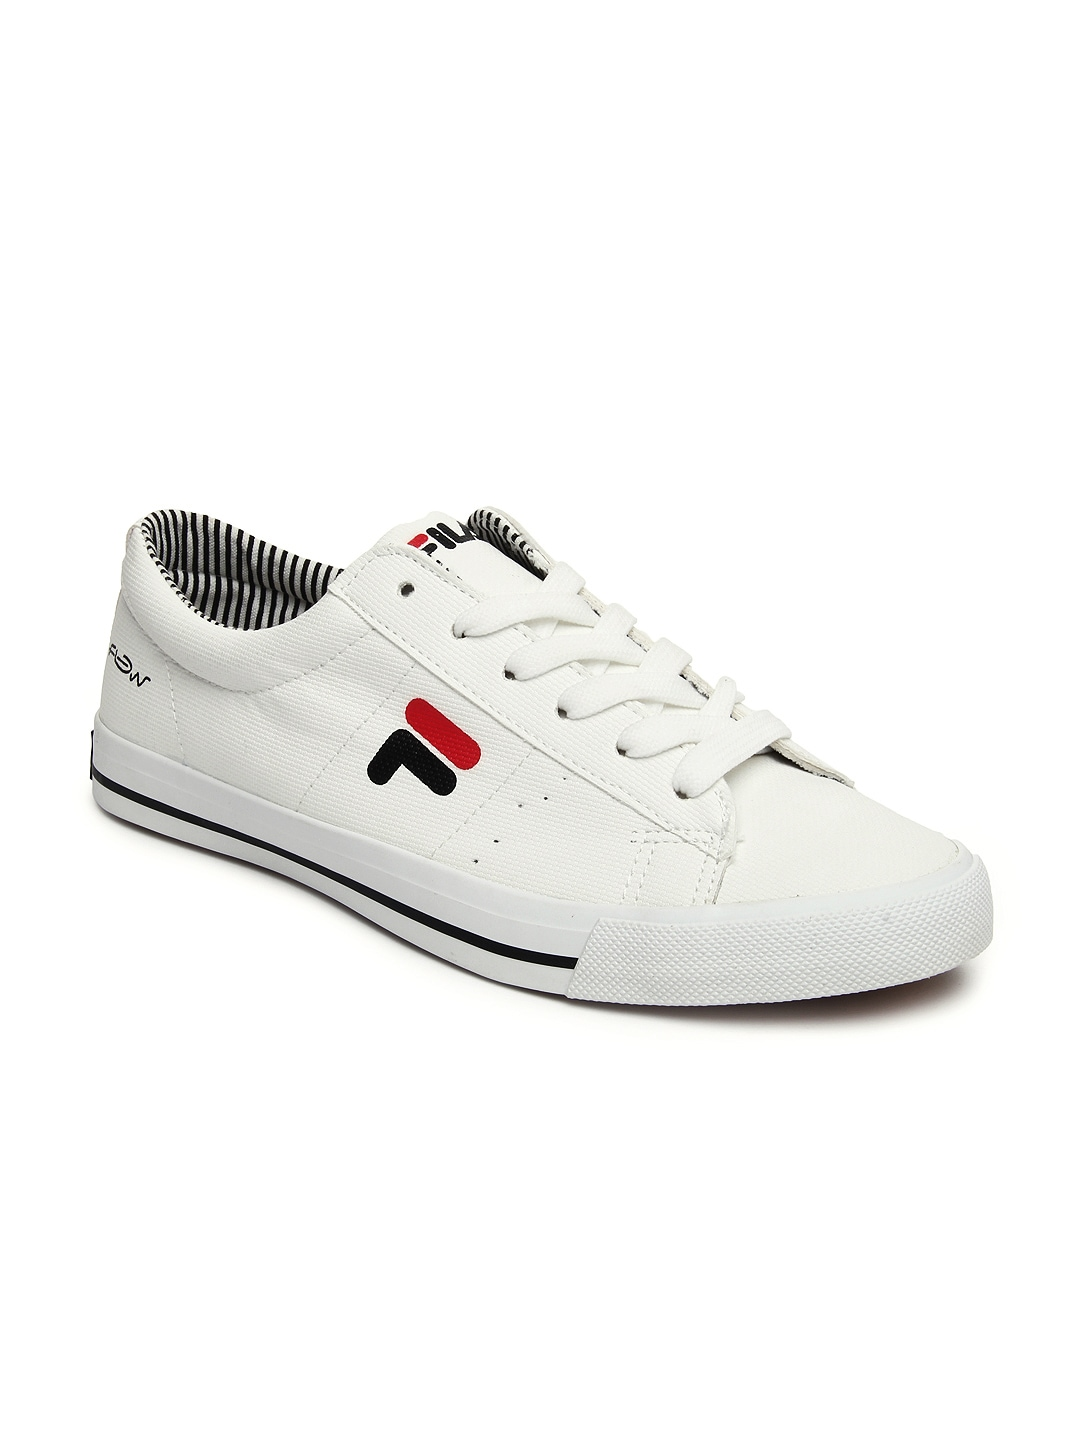 buy fila white ezio casual shoes casual shoes for